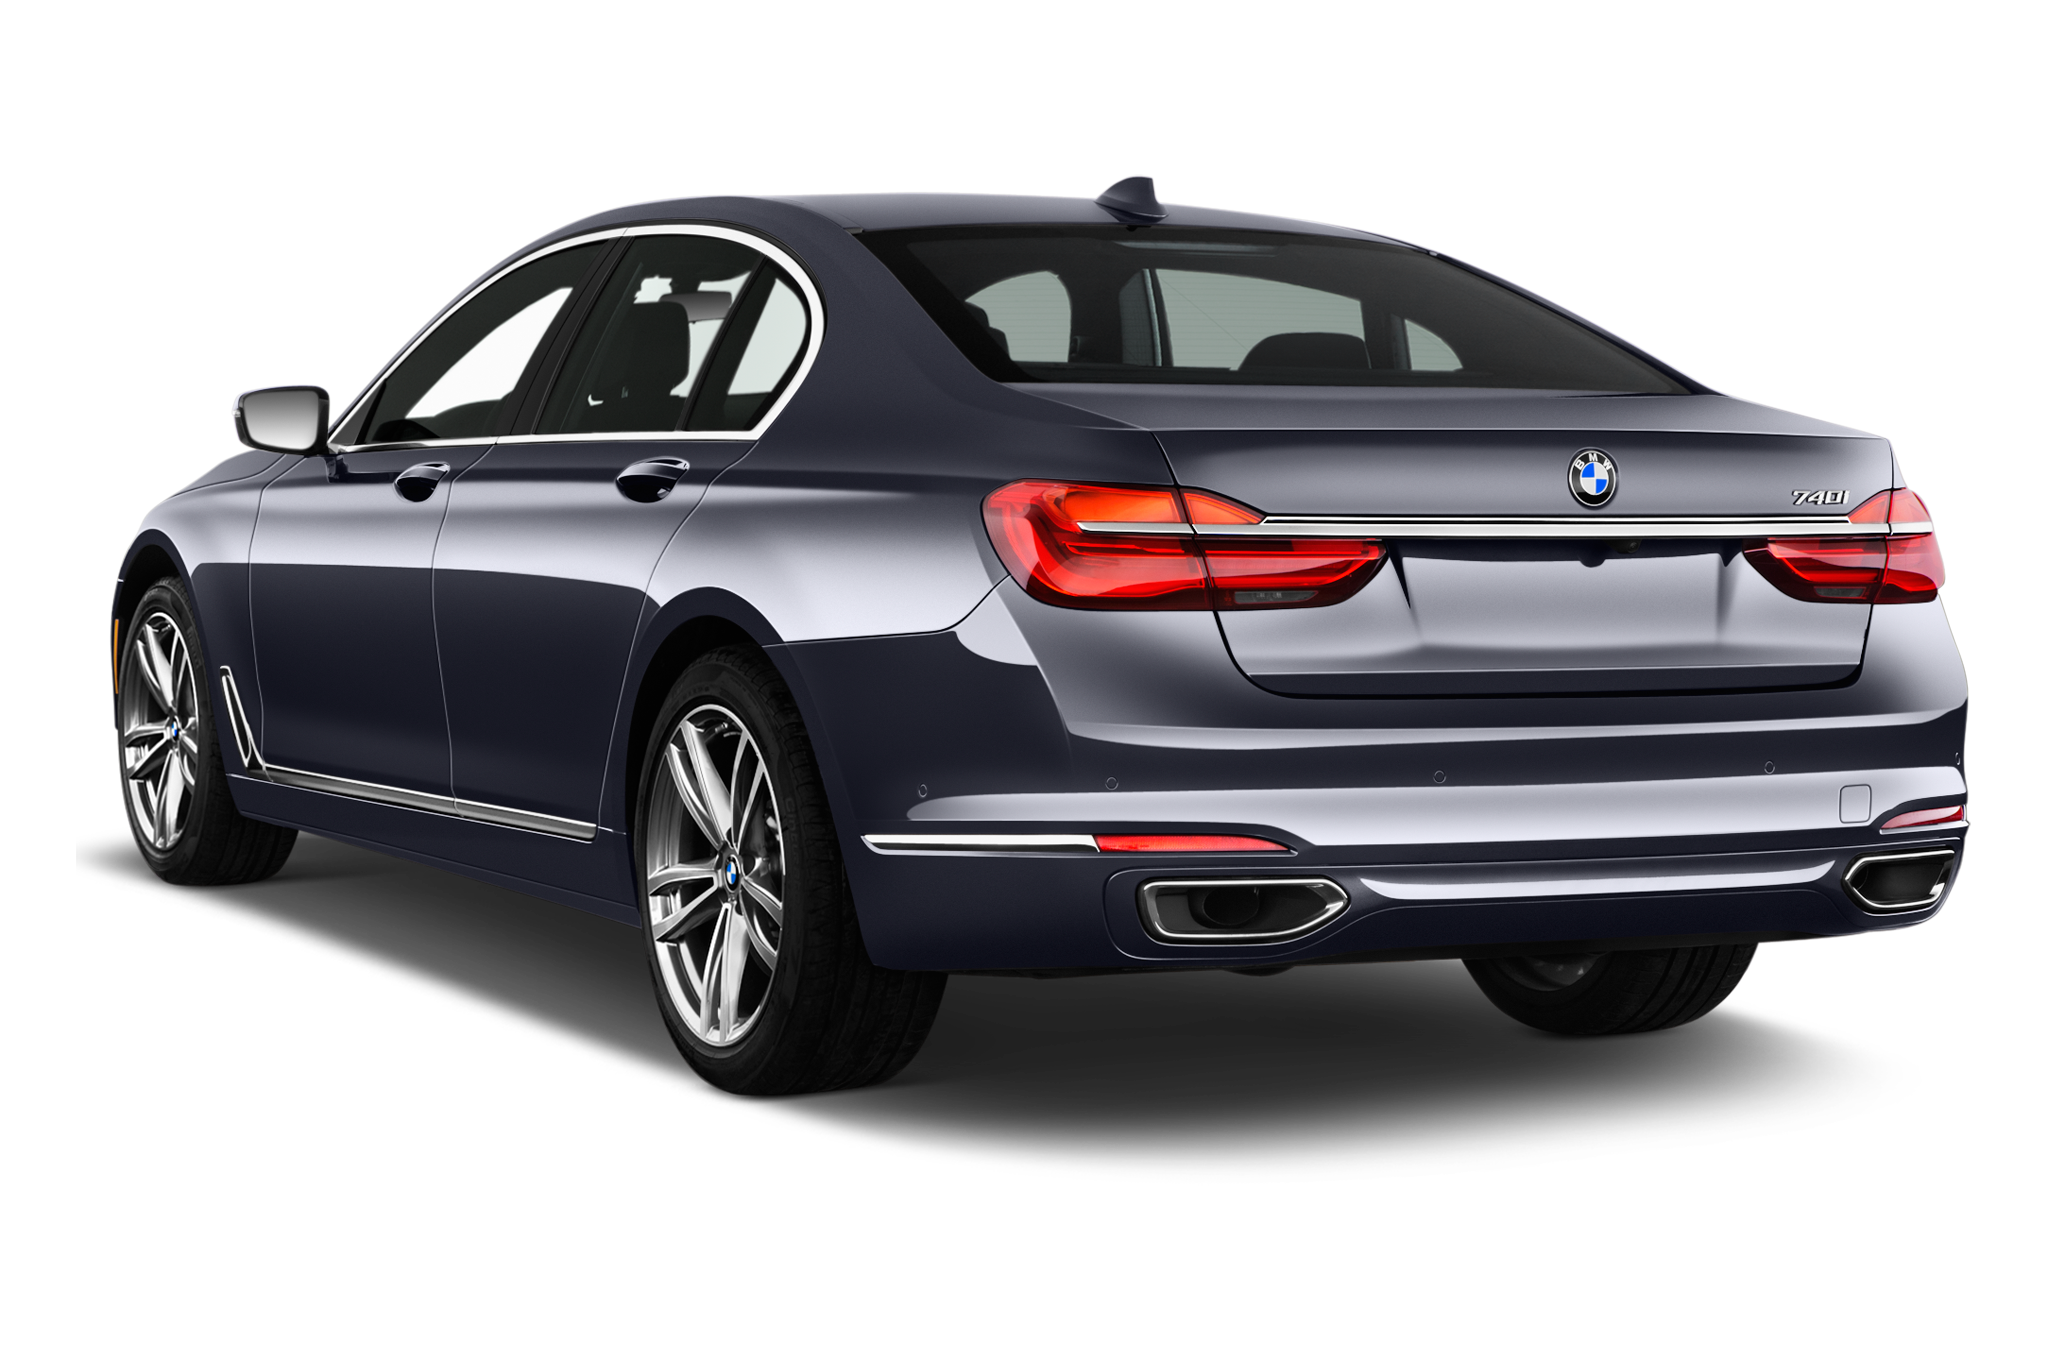 2017-bmw-7-series-740i-sedan-angular-rear